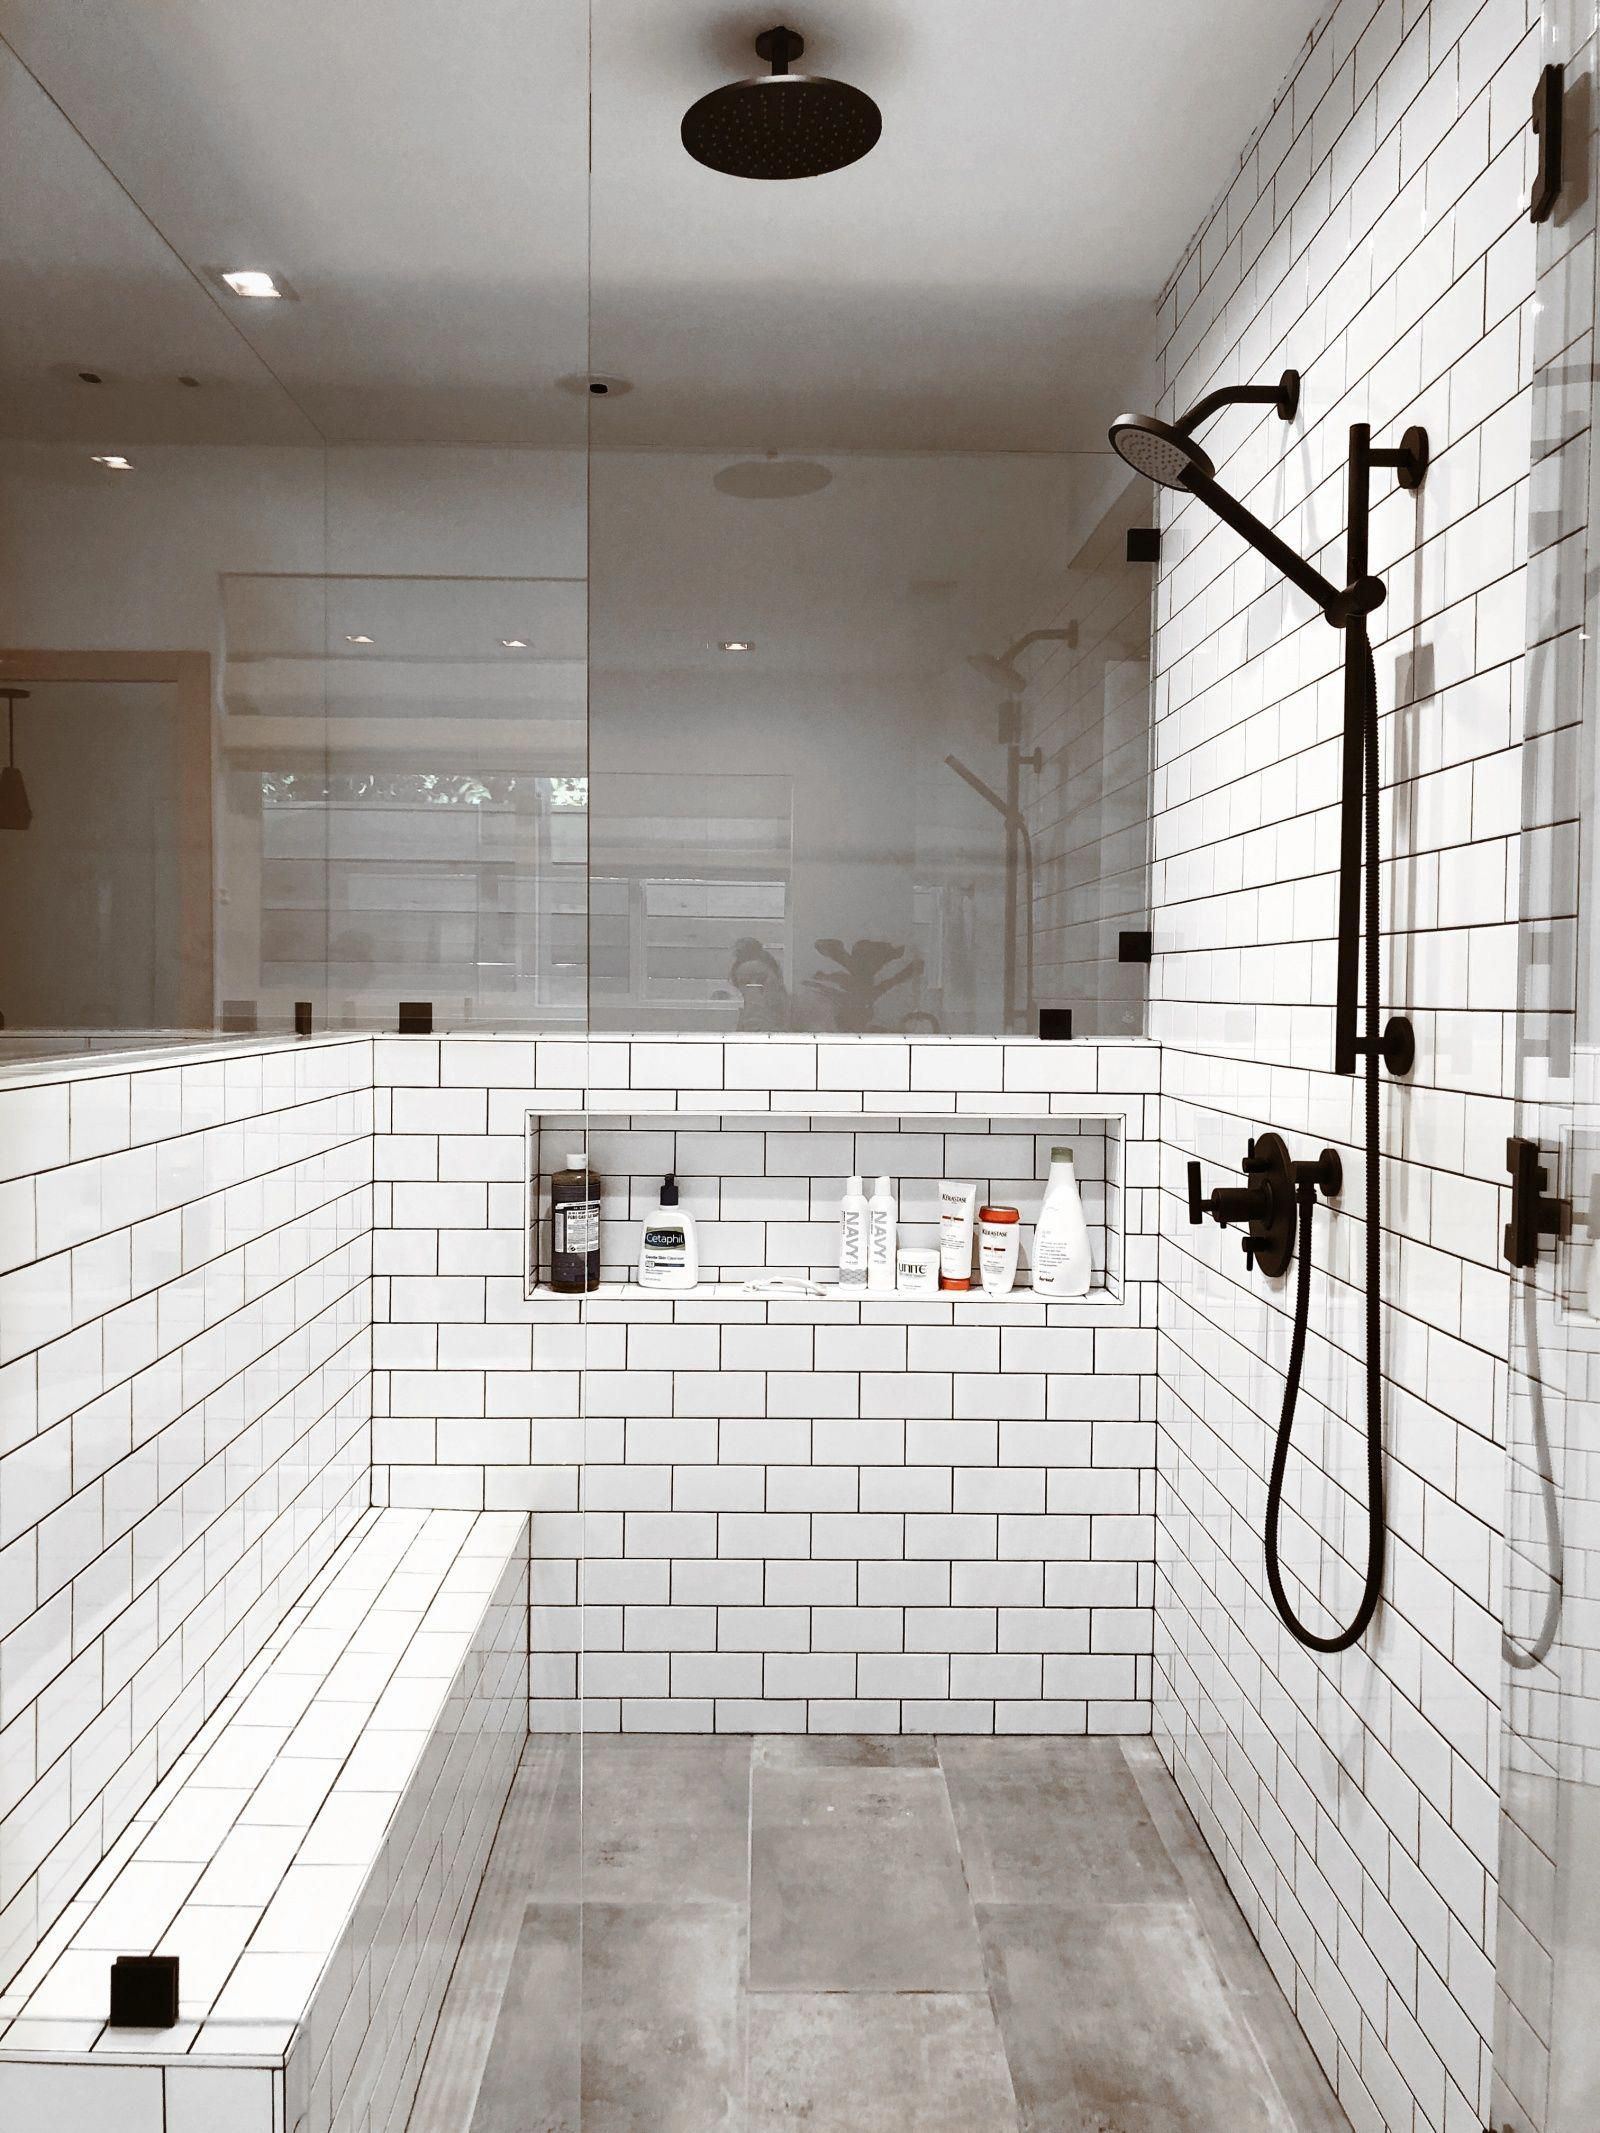 Loose Restroom Floor Tiles Mold And Other Problems Can Not Just Look Unsightly However They Also Be Dangerous Bathroomremodel